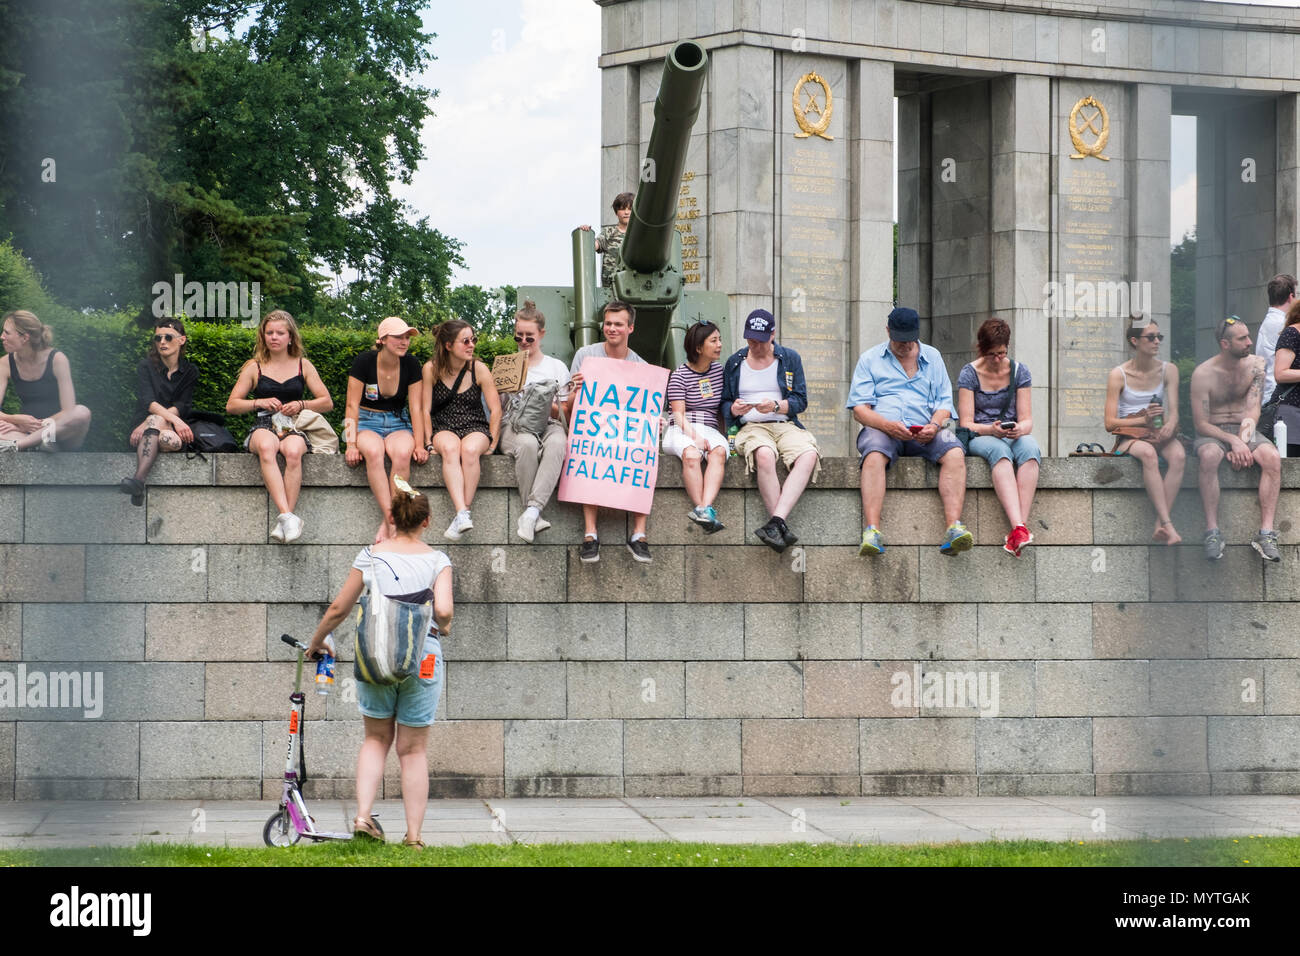 Berlin, Germany - march 2018: Group of Protesters sitting on wall in Berlin one holding sign with slogan 'Nazis secretly eat falafel ' (german: Nazis  - Stock Image